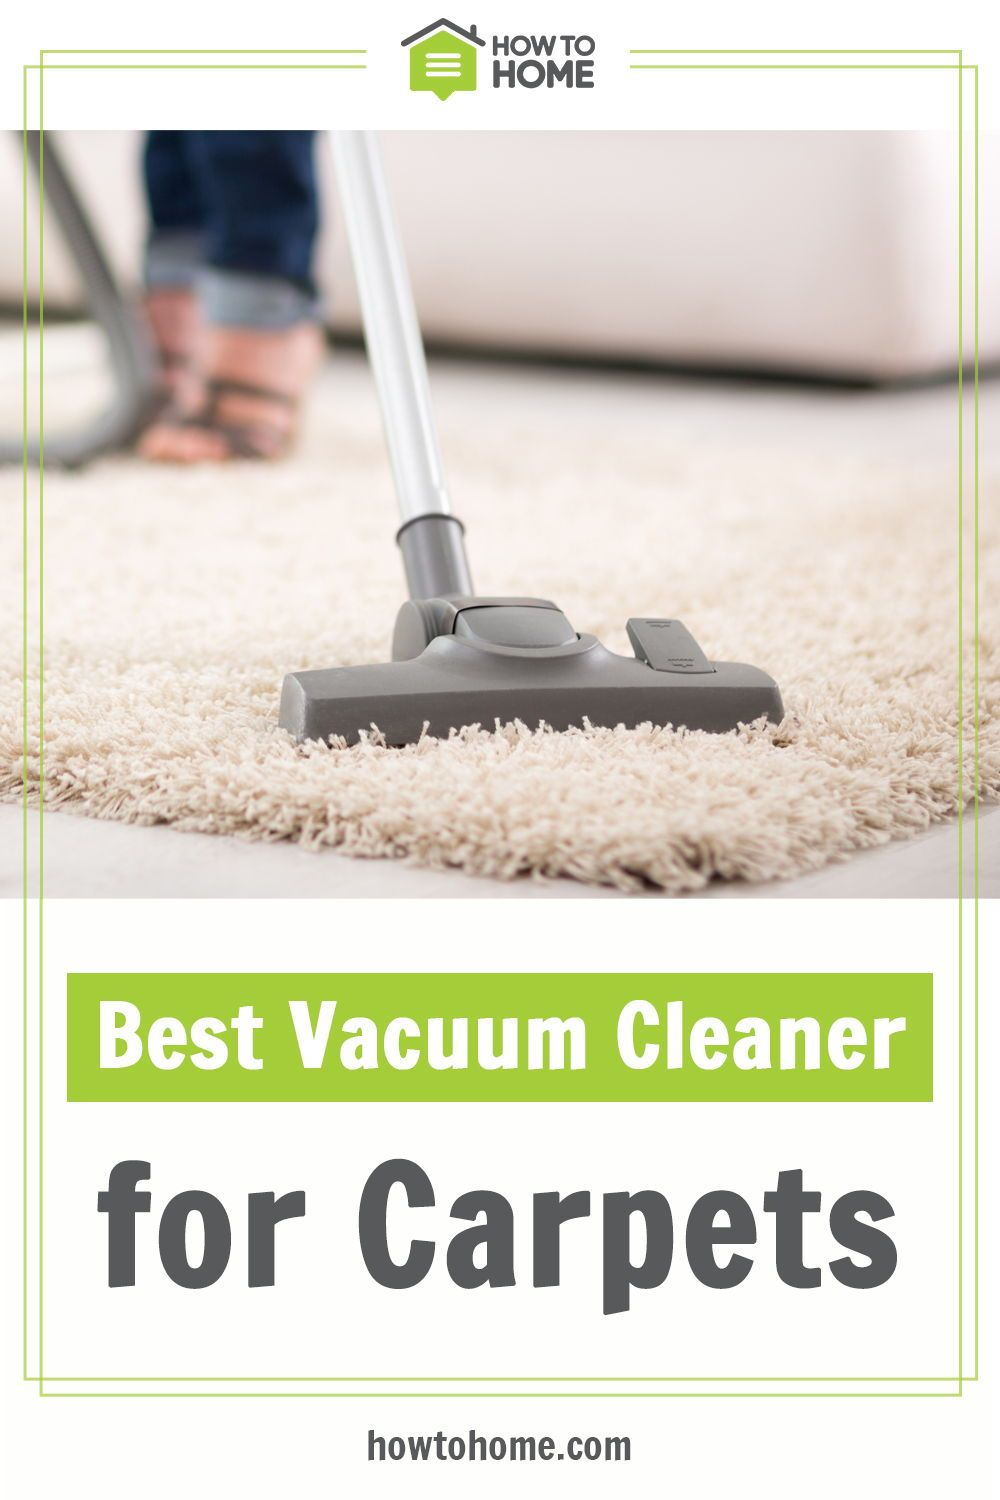 Best Types of Carpet for Pets (With images) How to clean